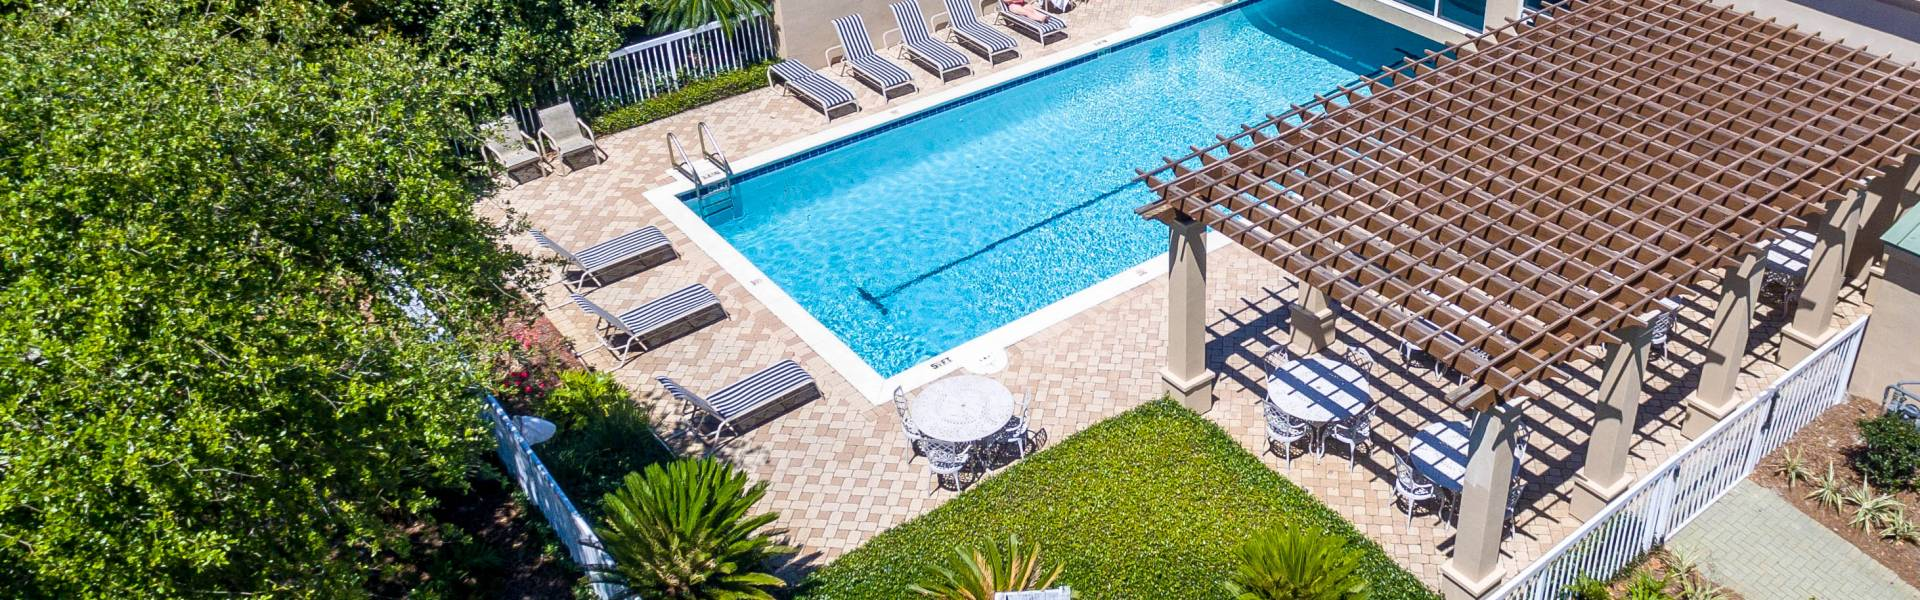 Compass Resorts The Spa at Silver Shells Indoor-Outdoor Pool